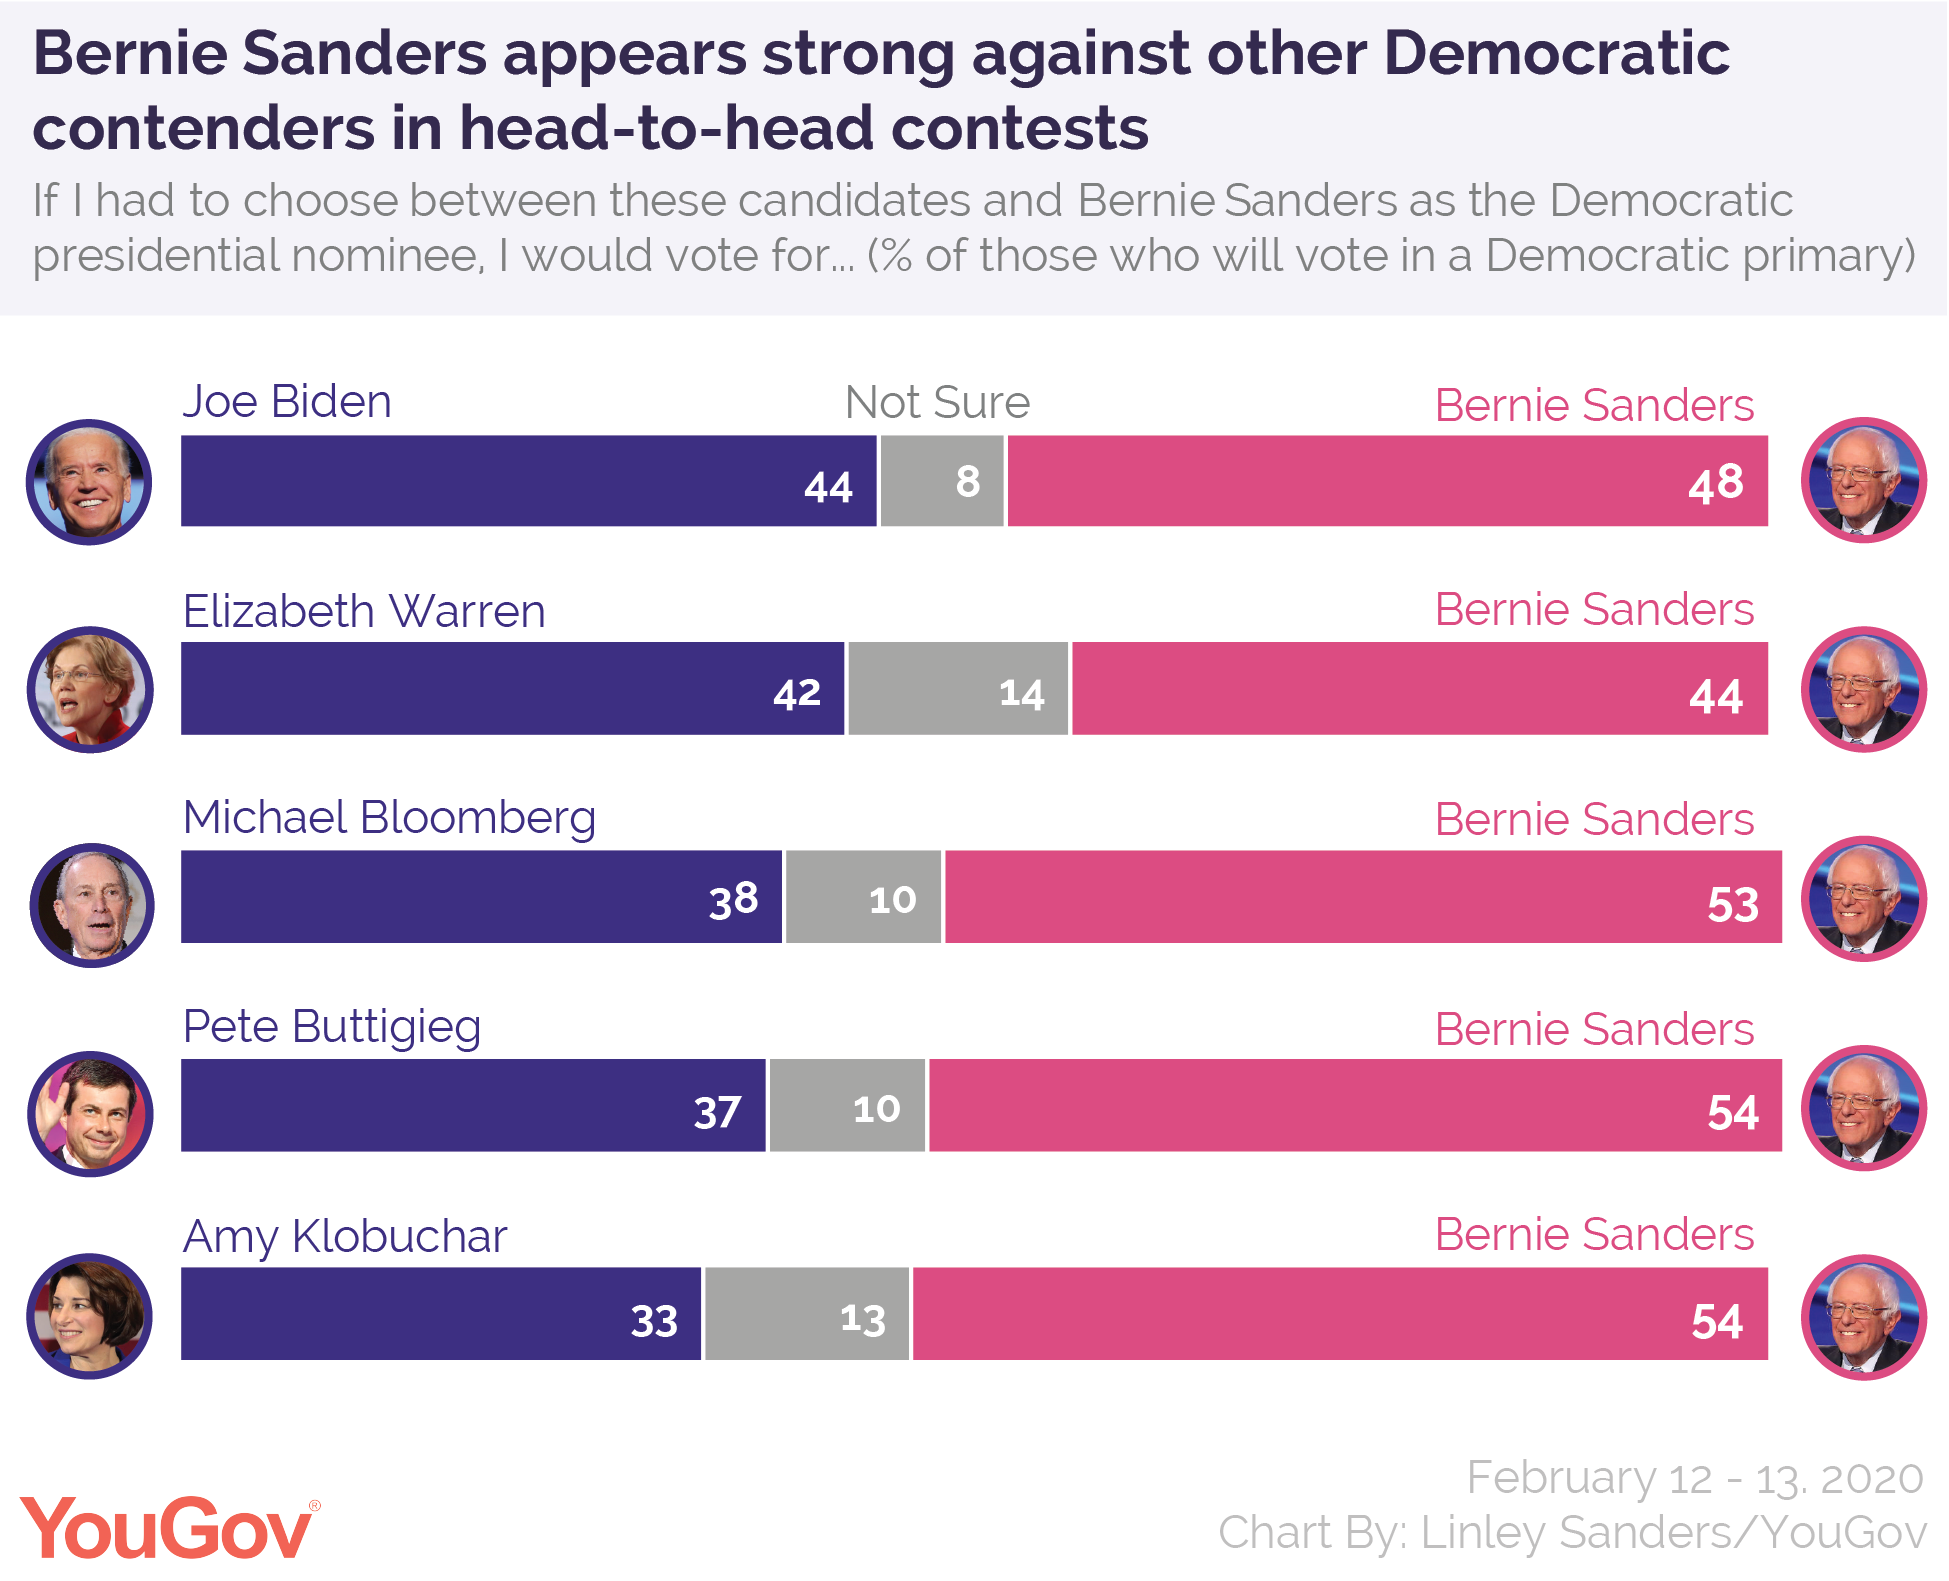 Bernie Sanders appears strong against other Democratic contenders in head-to-head contests